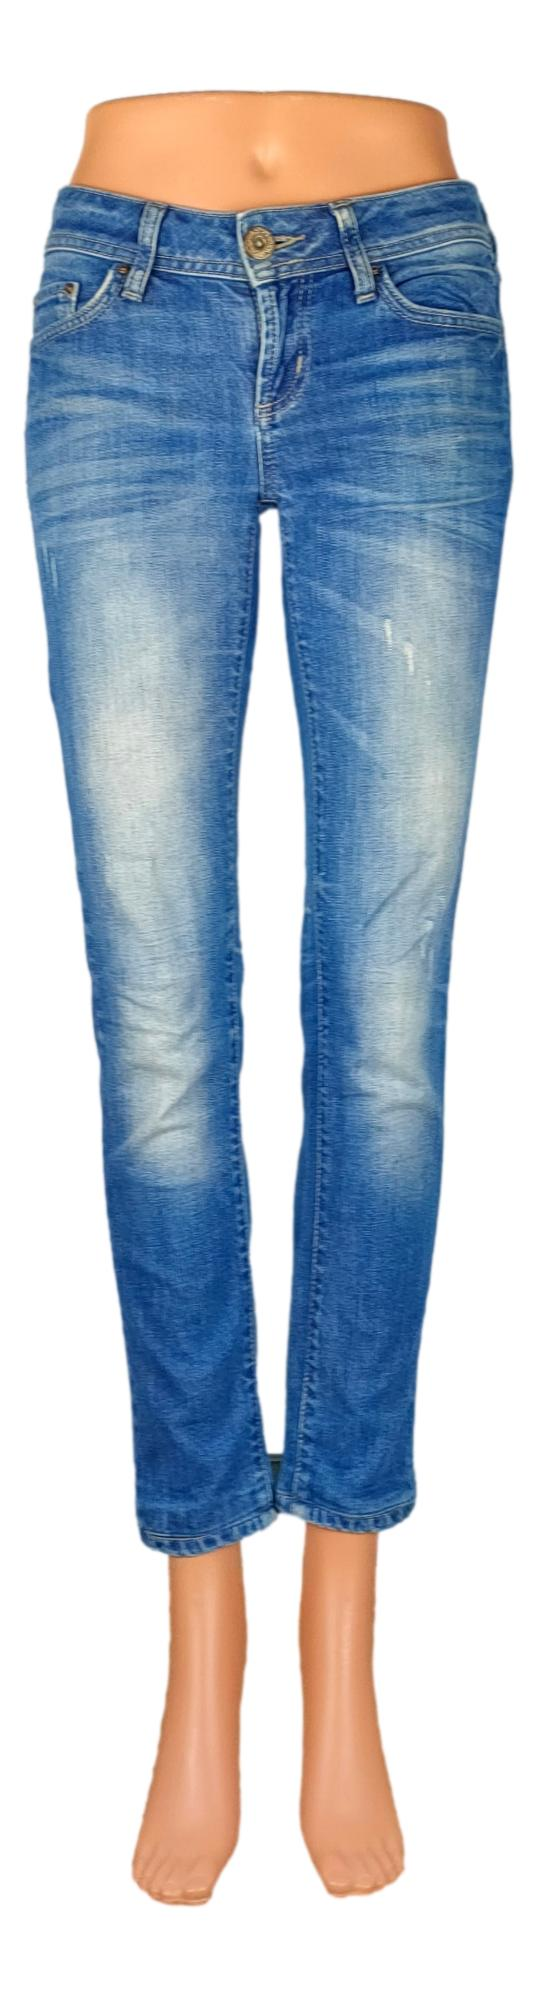 Jean Colin\'s - Taille 36